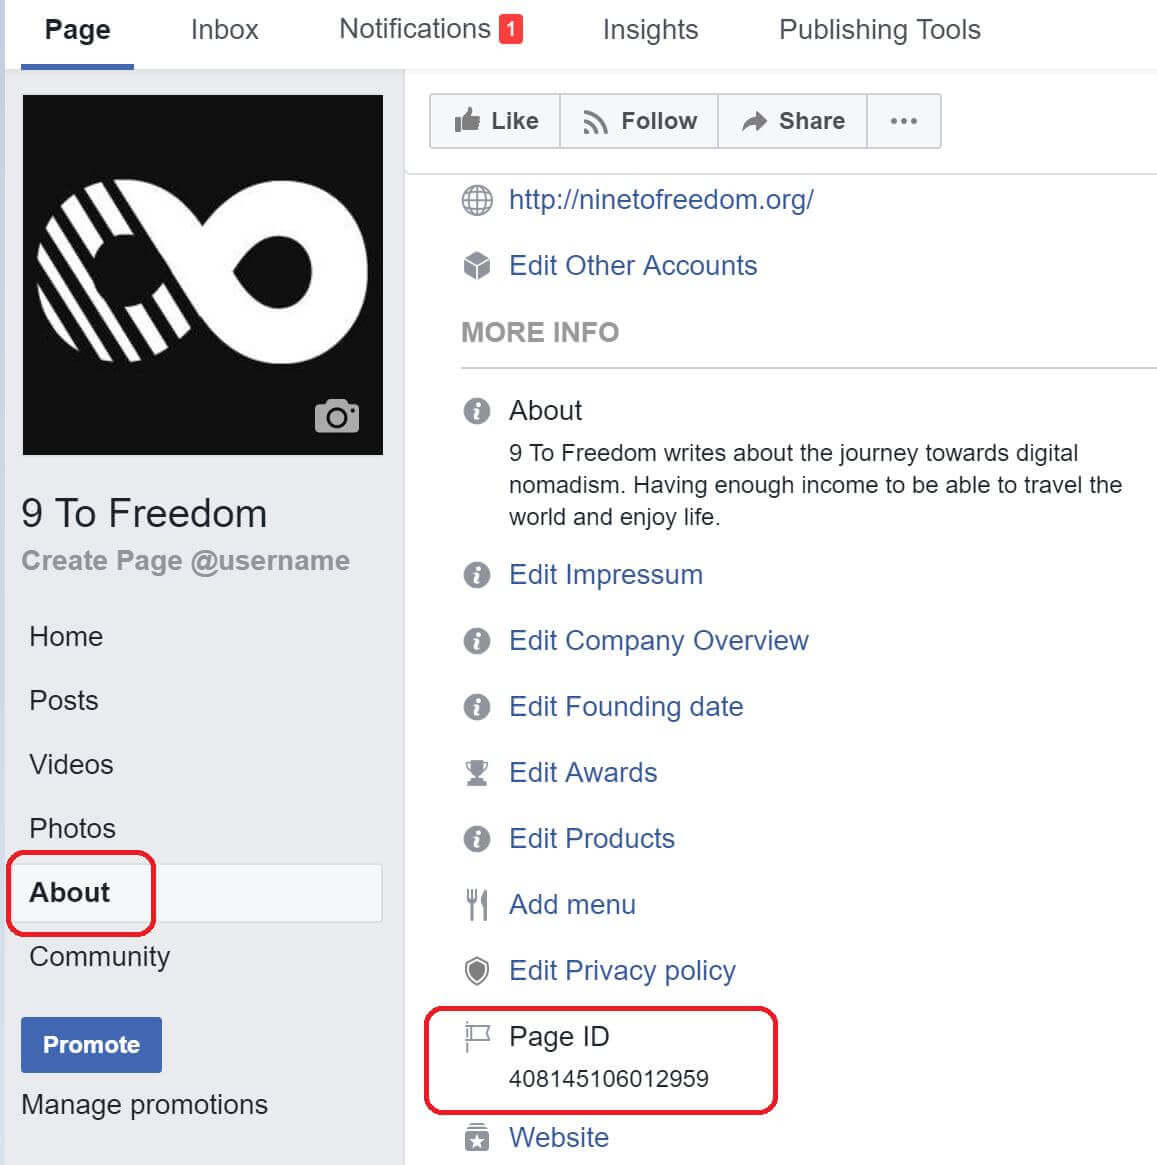 Find your Facebook Page ID